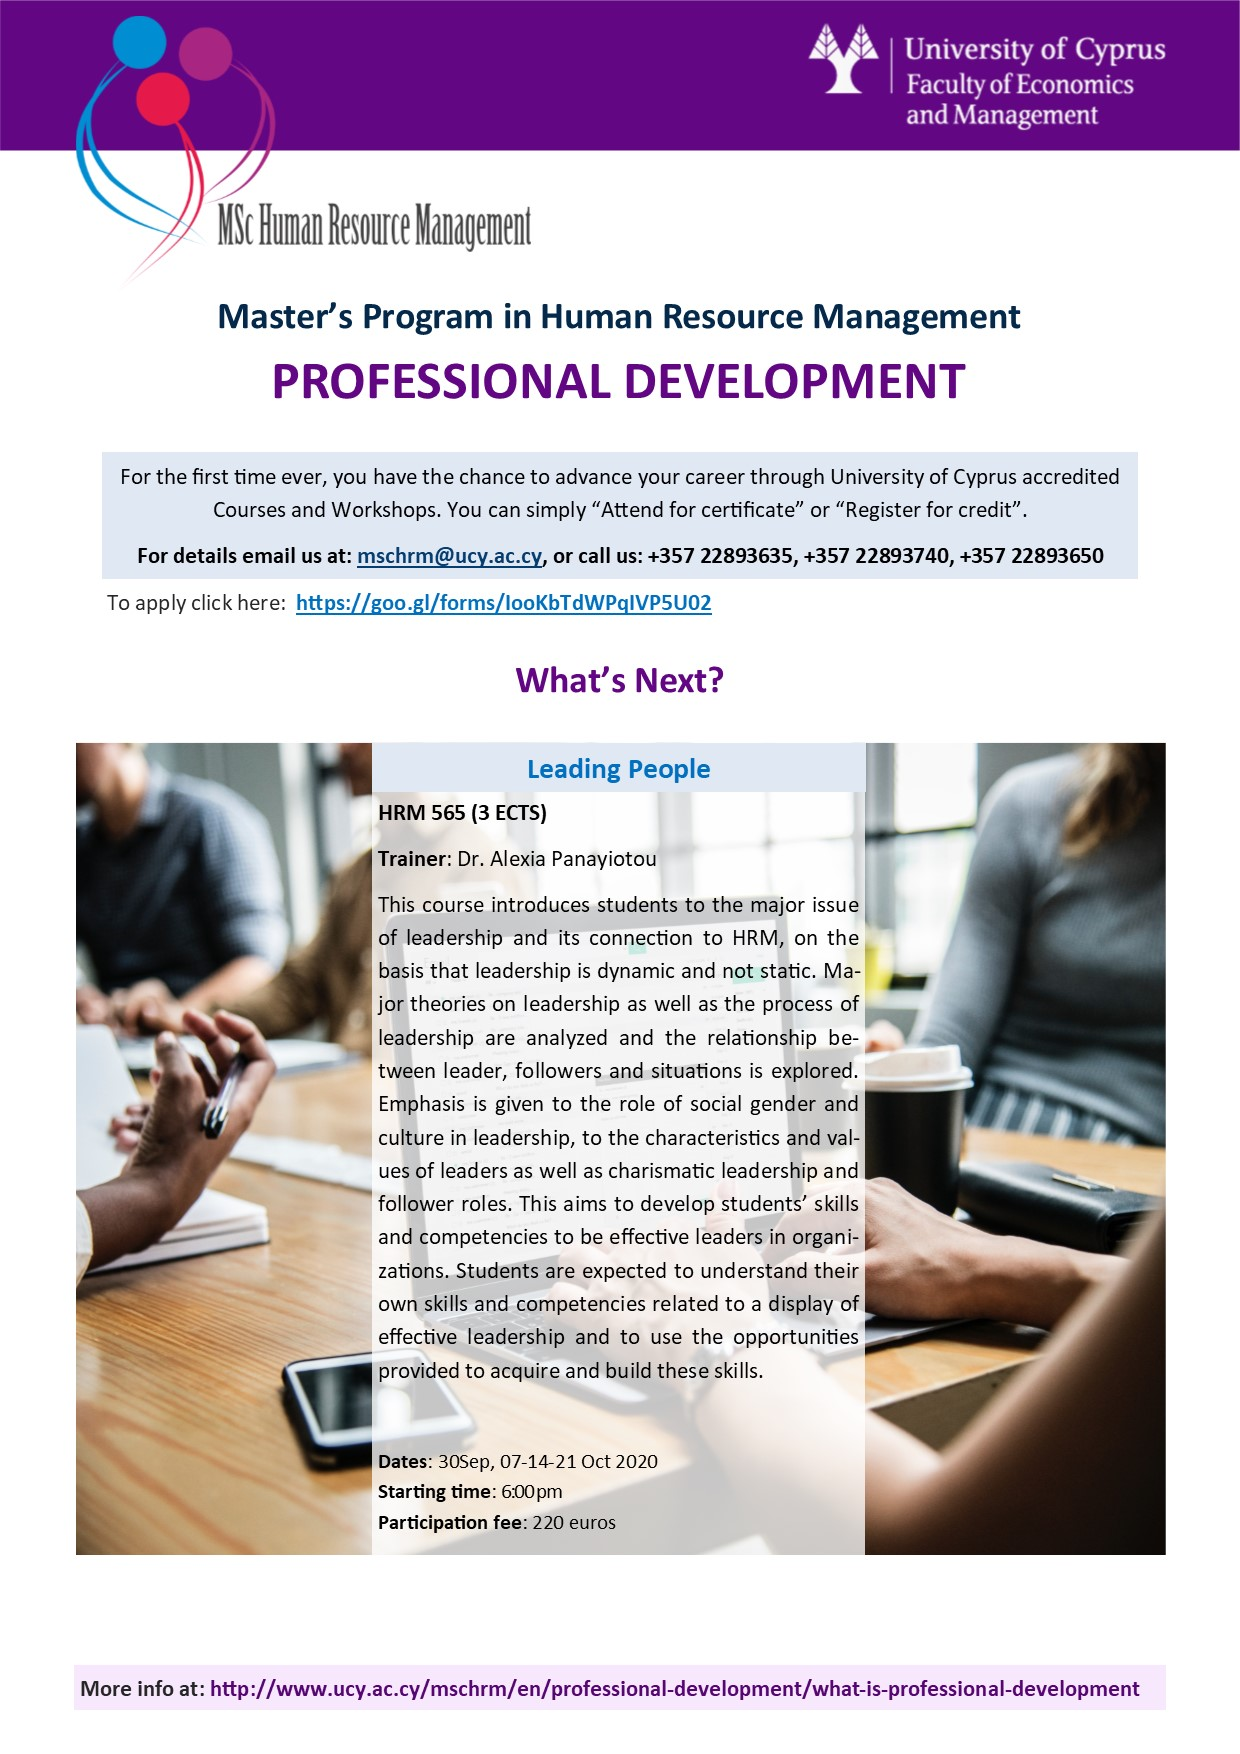 MScHRM Professional Development en_Leading People_v14_Sep-Oct 2020 - Copy.jpg